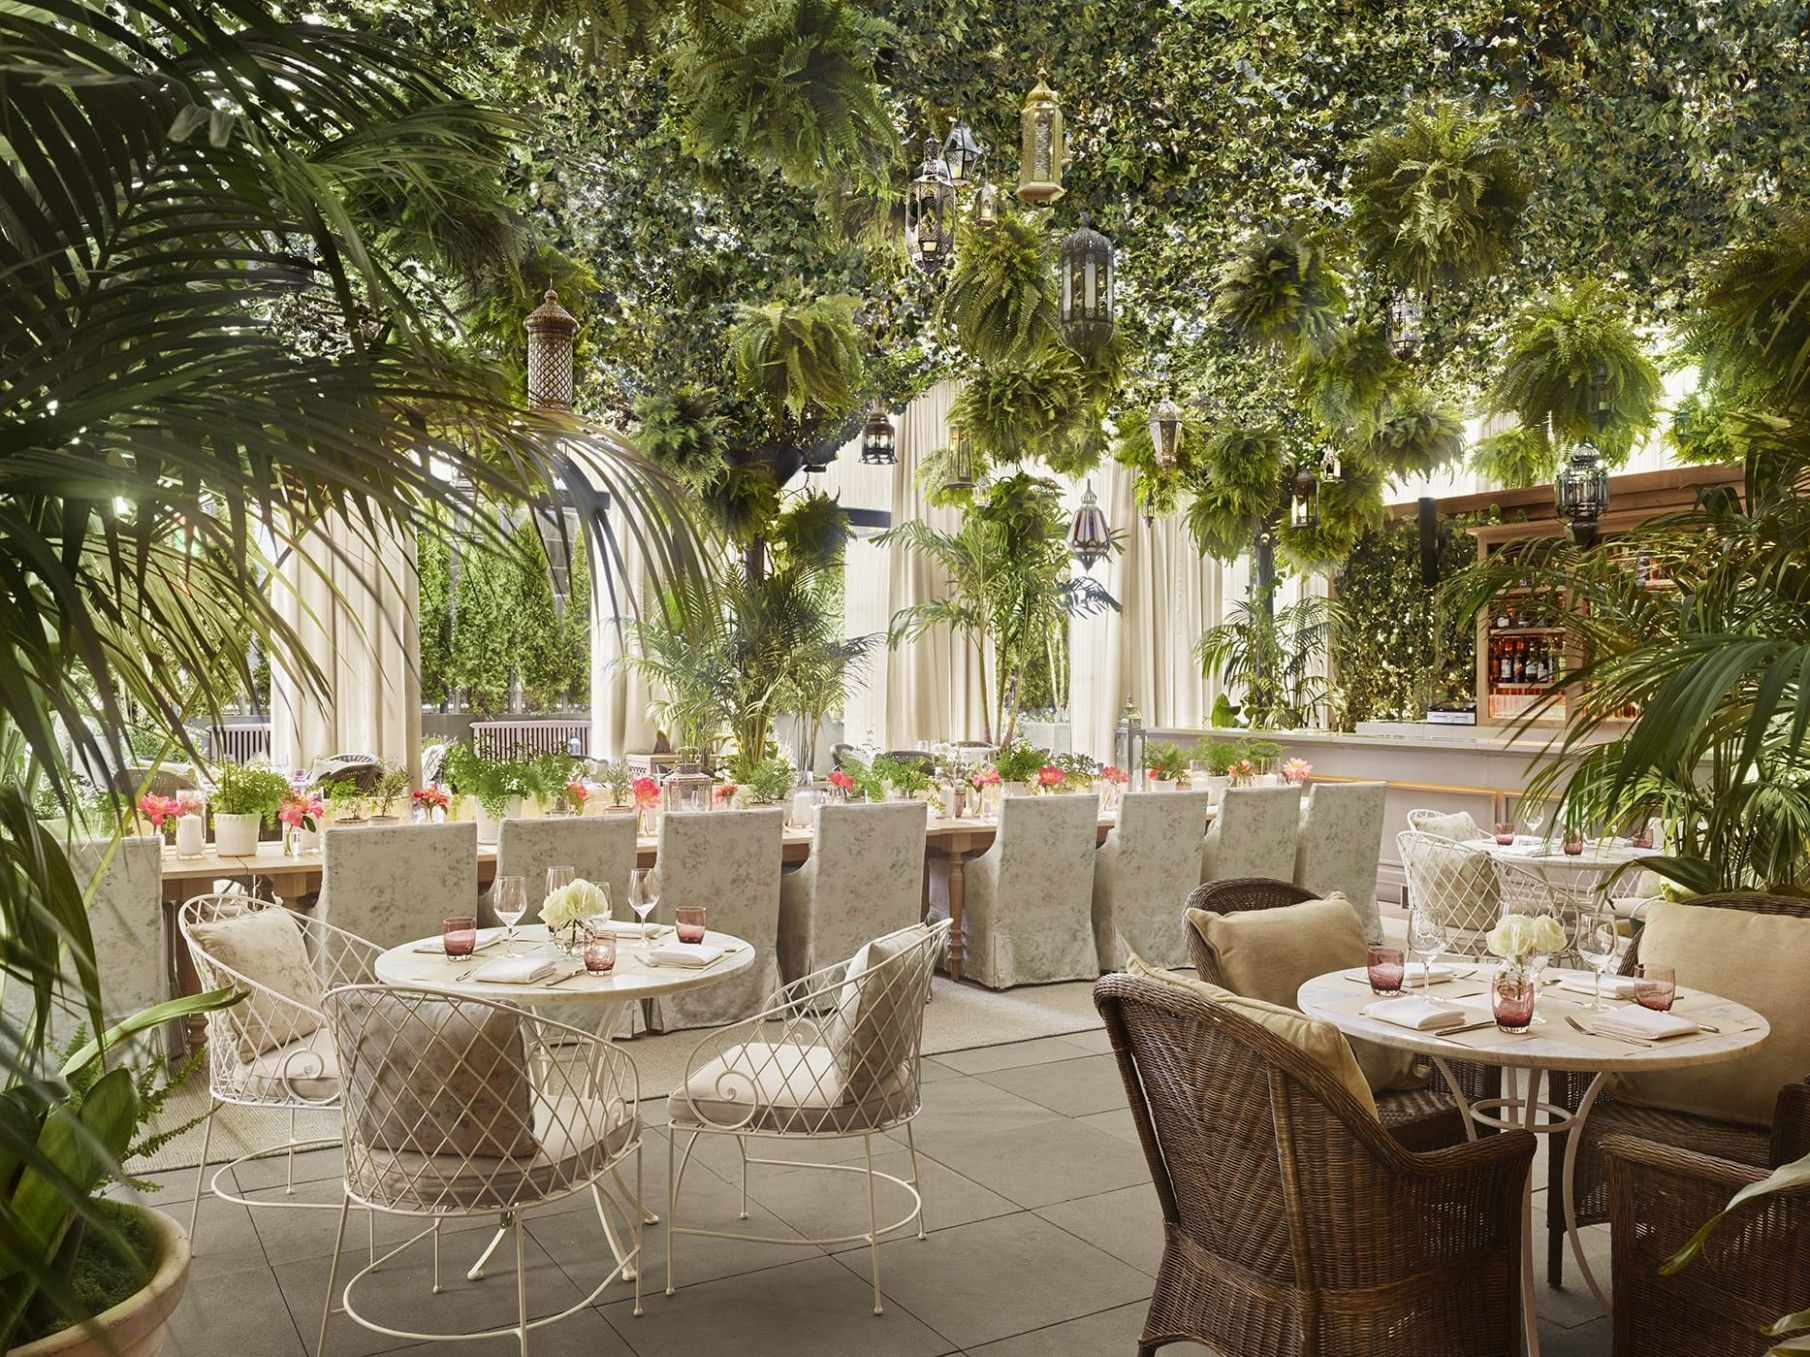 Garden Table Reservations Garden Reservations Table In 2020 Edition Hotel Terrace Restaurant Rooftop Bars Nyc